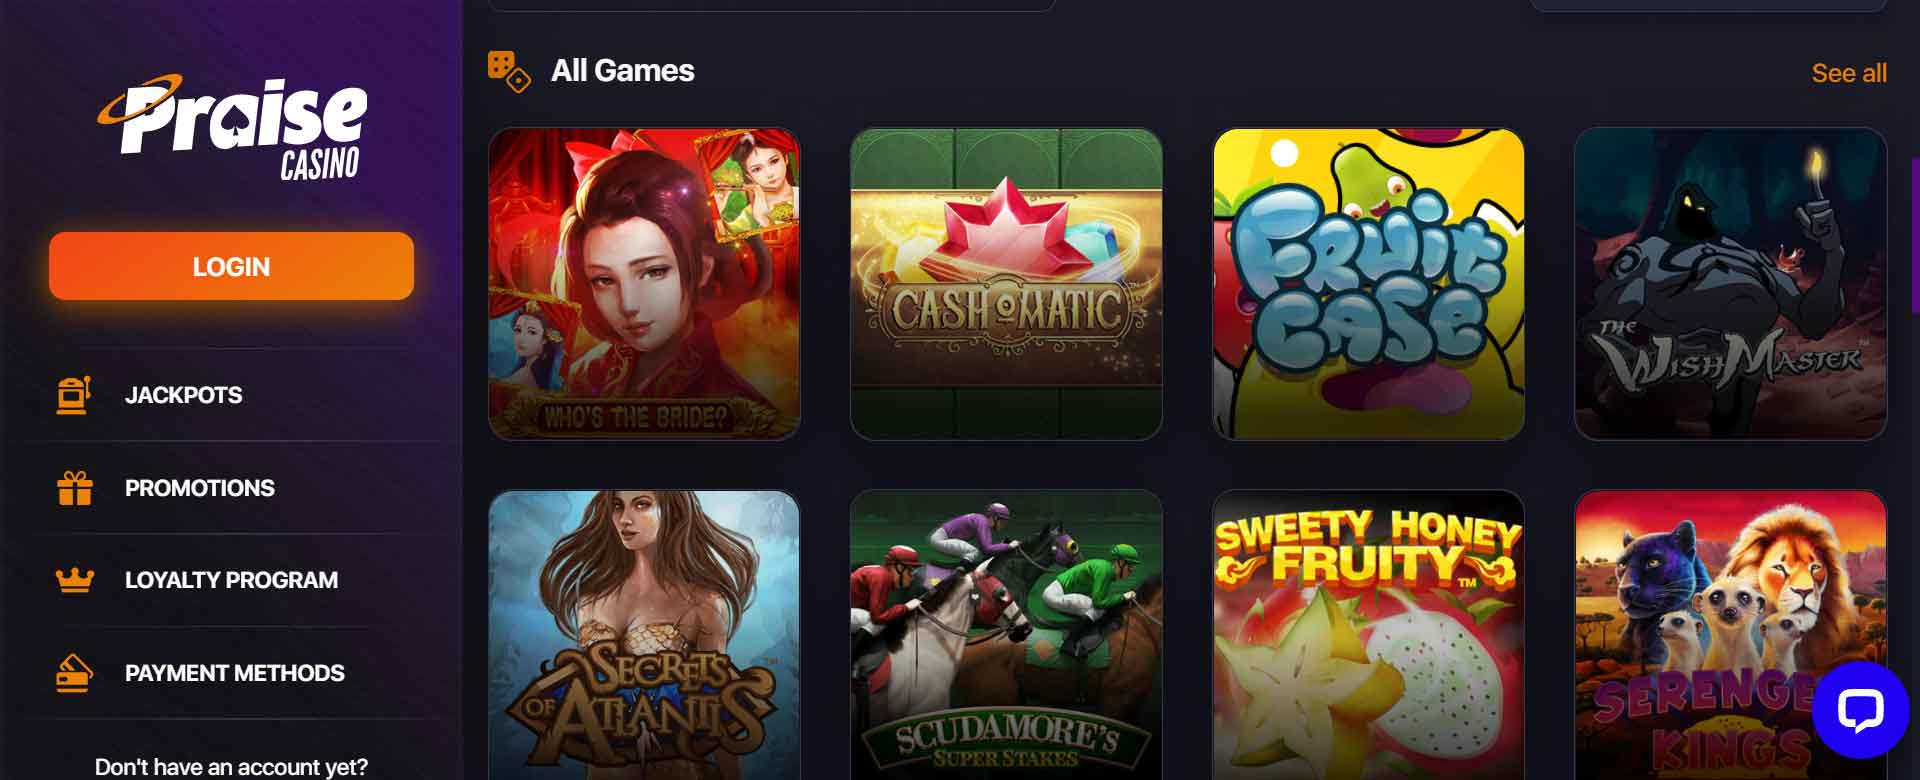 Slot games available at Praise Casino -